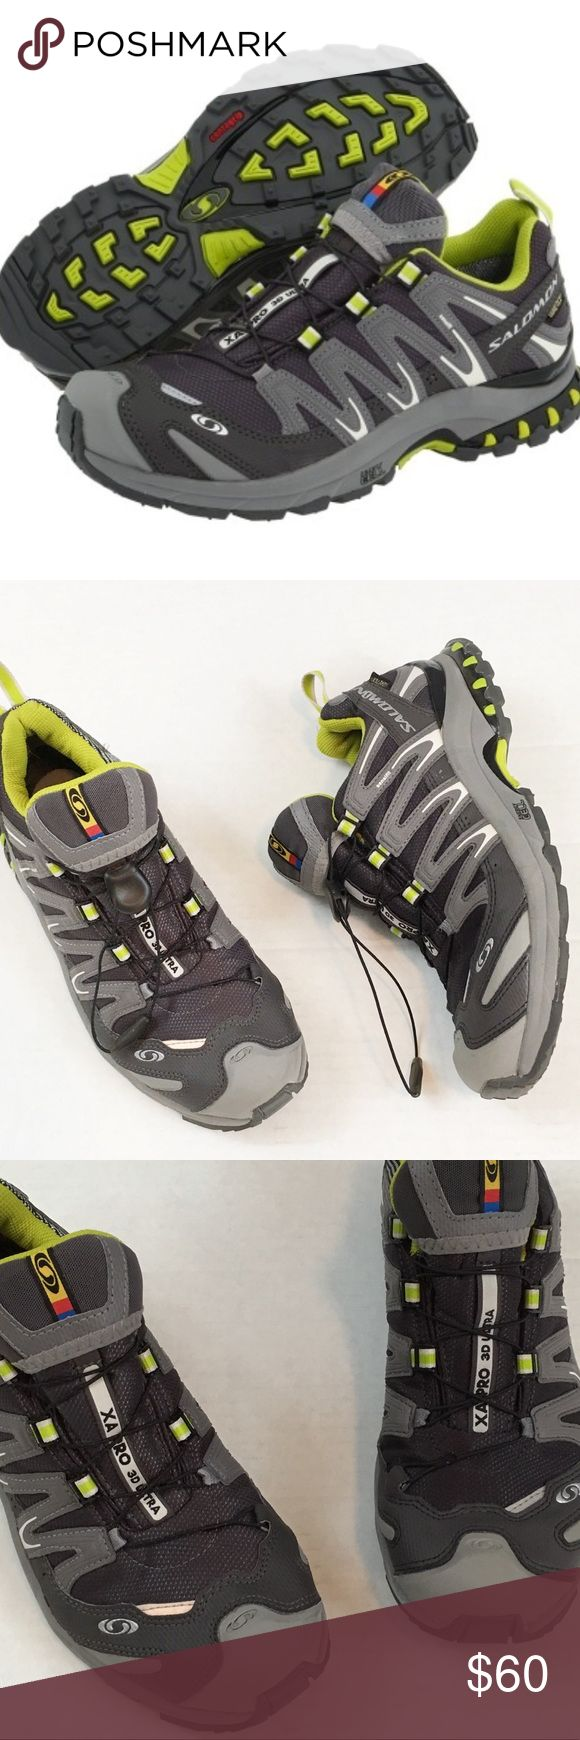 Salomon XA Pro 3D Trail Running Hiking Shoes Grey and neon green trail running or hiking shoes. Waterproof design (Gore-Tex). Single pull lace. Provides great traction, uppers show light wear and insoles and bottom soles show normal wear. Recently washed and dried in the sun. VGUC for trail runners. Salomon Shoes Sneakers